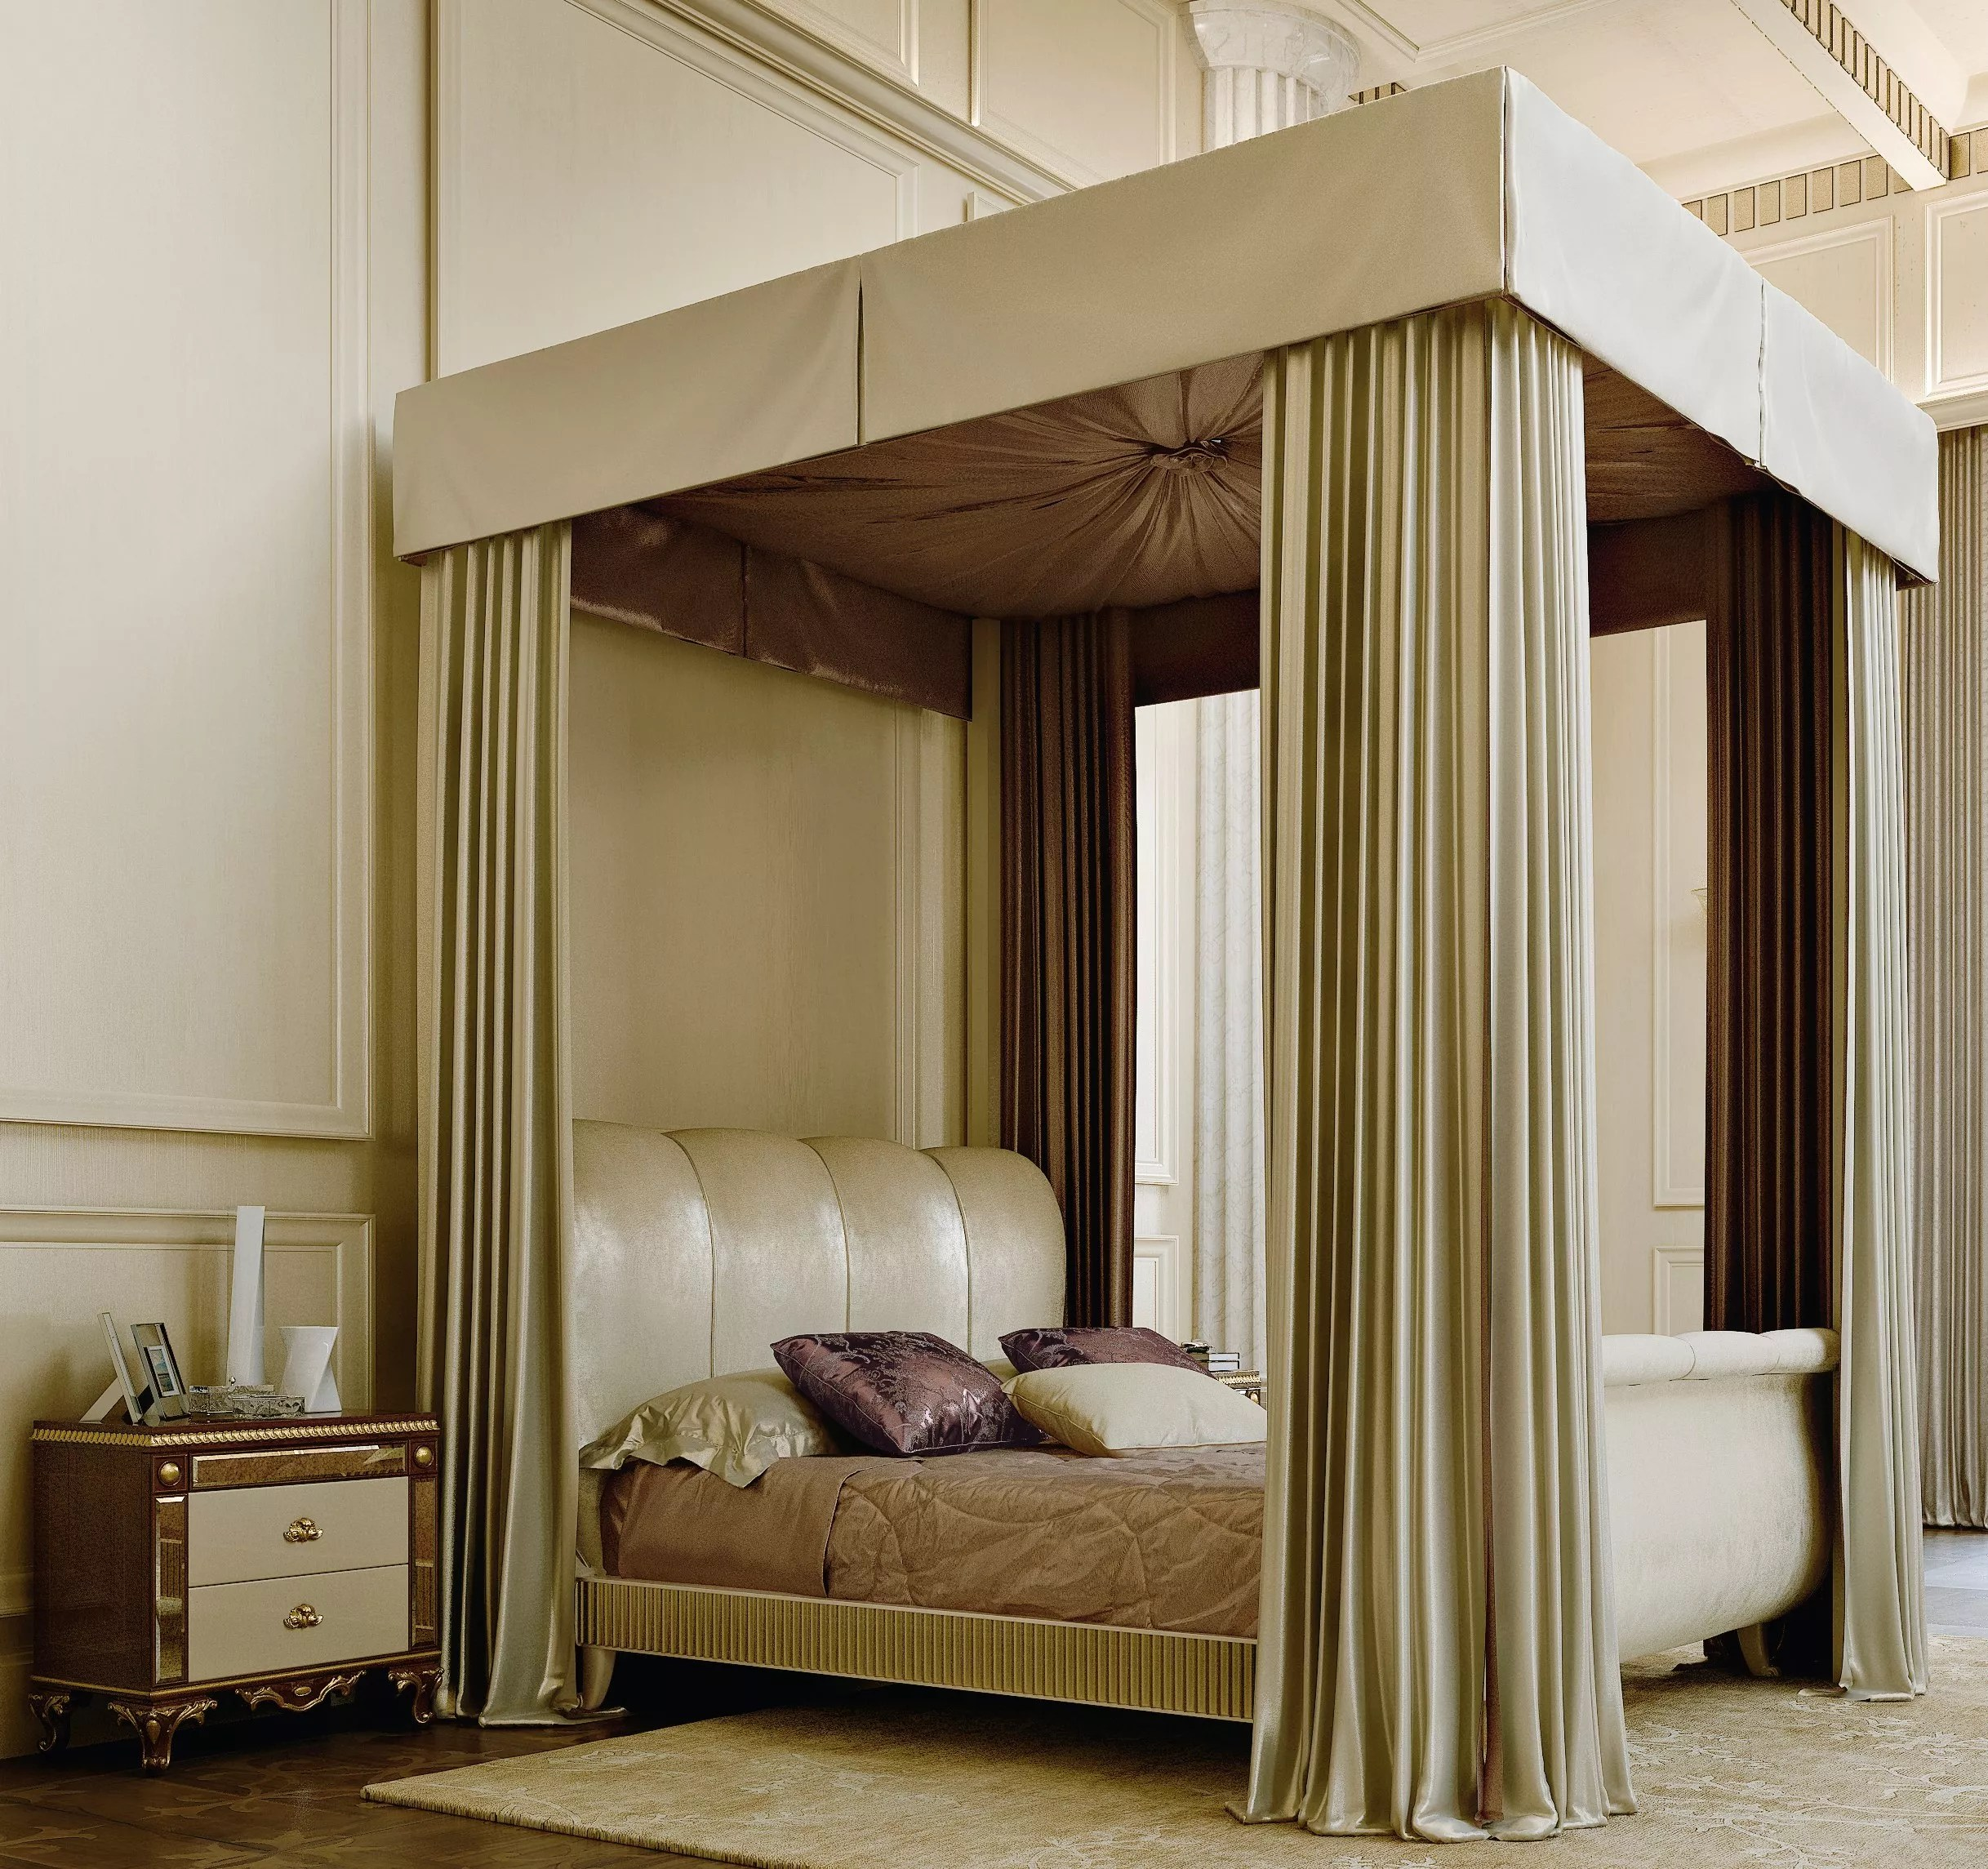 Luxurious Canopy Beds Amp Etf517 Four Poster Bed With Canopy